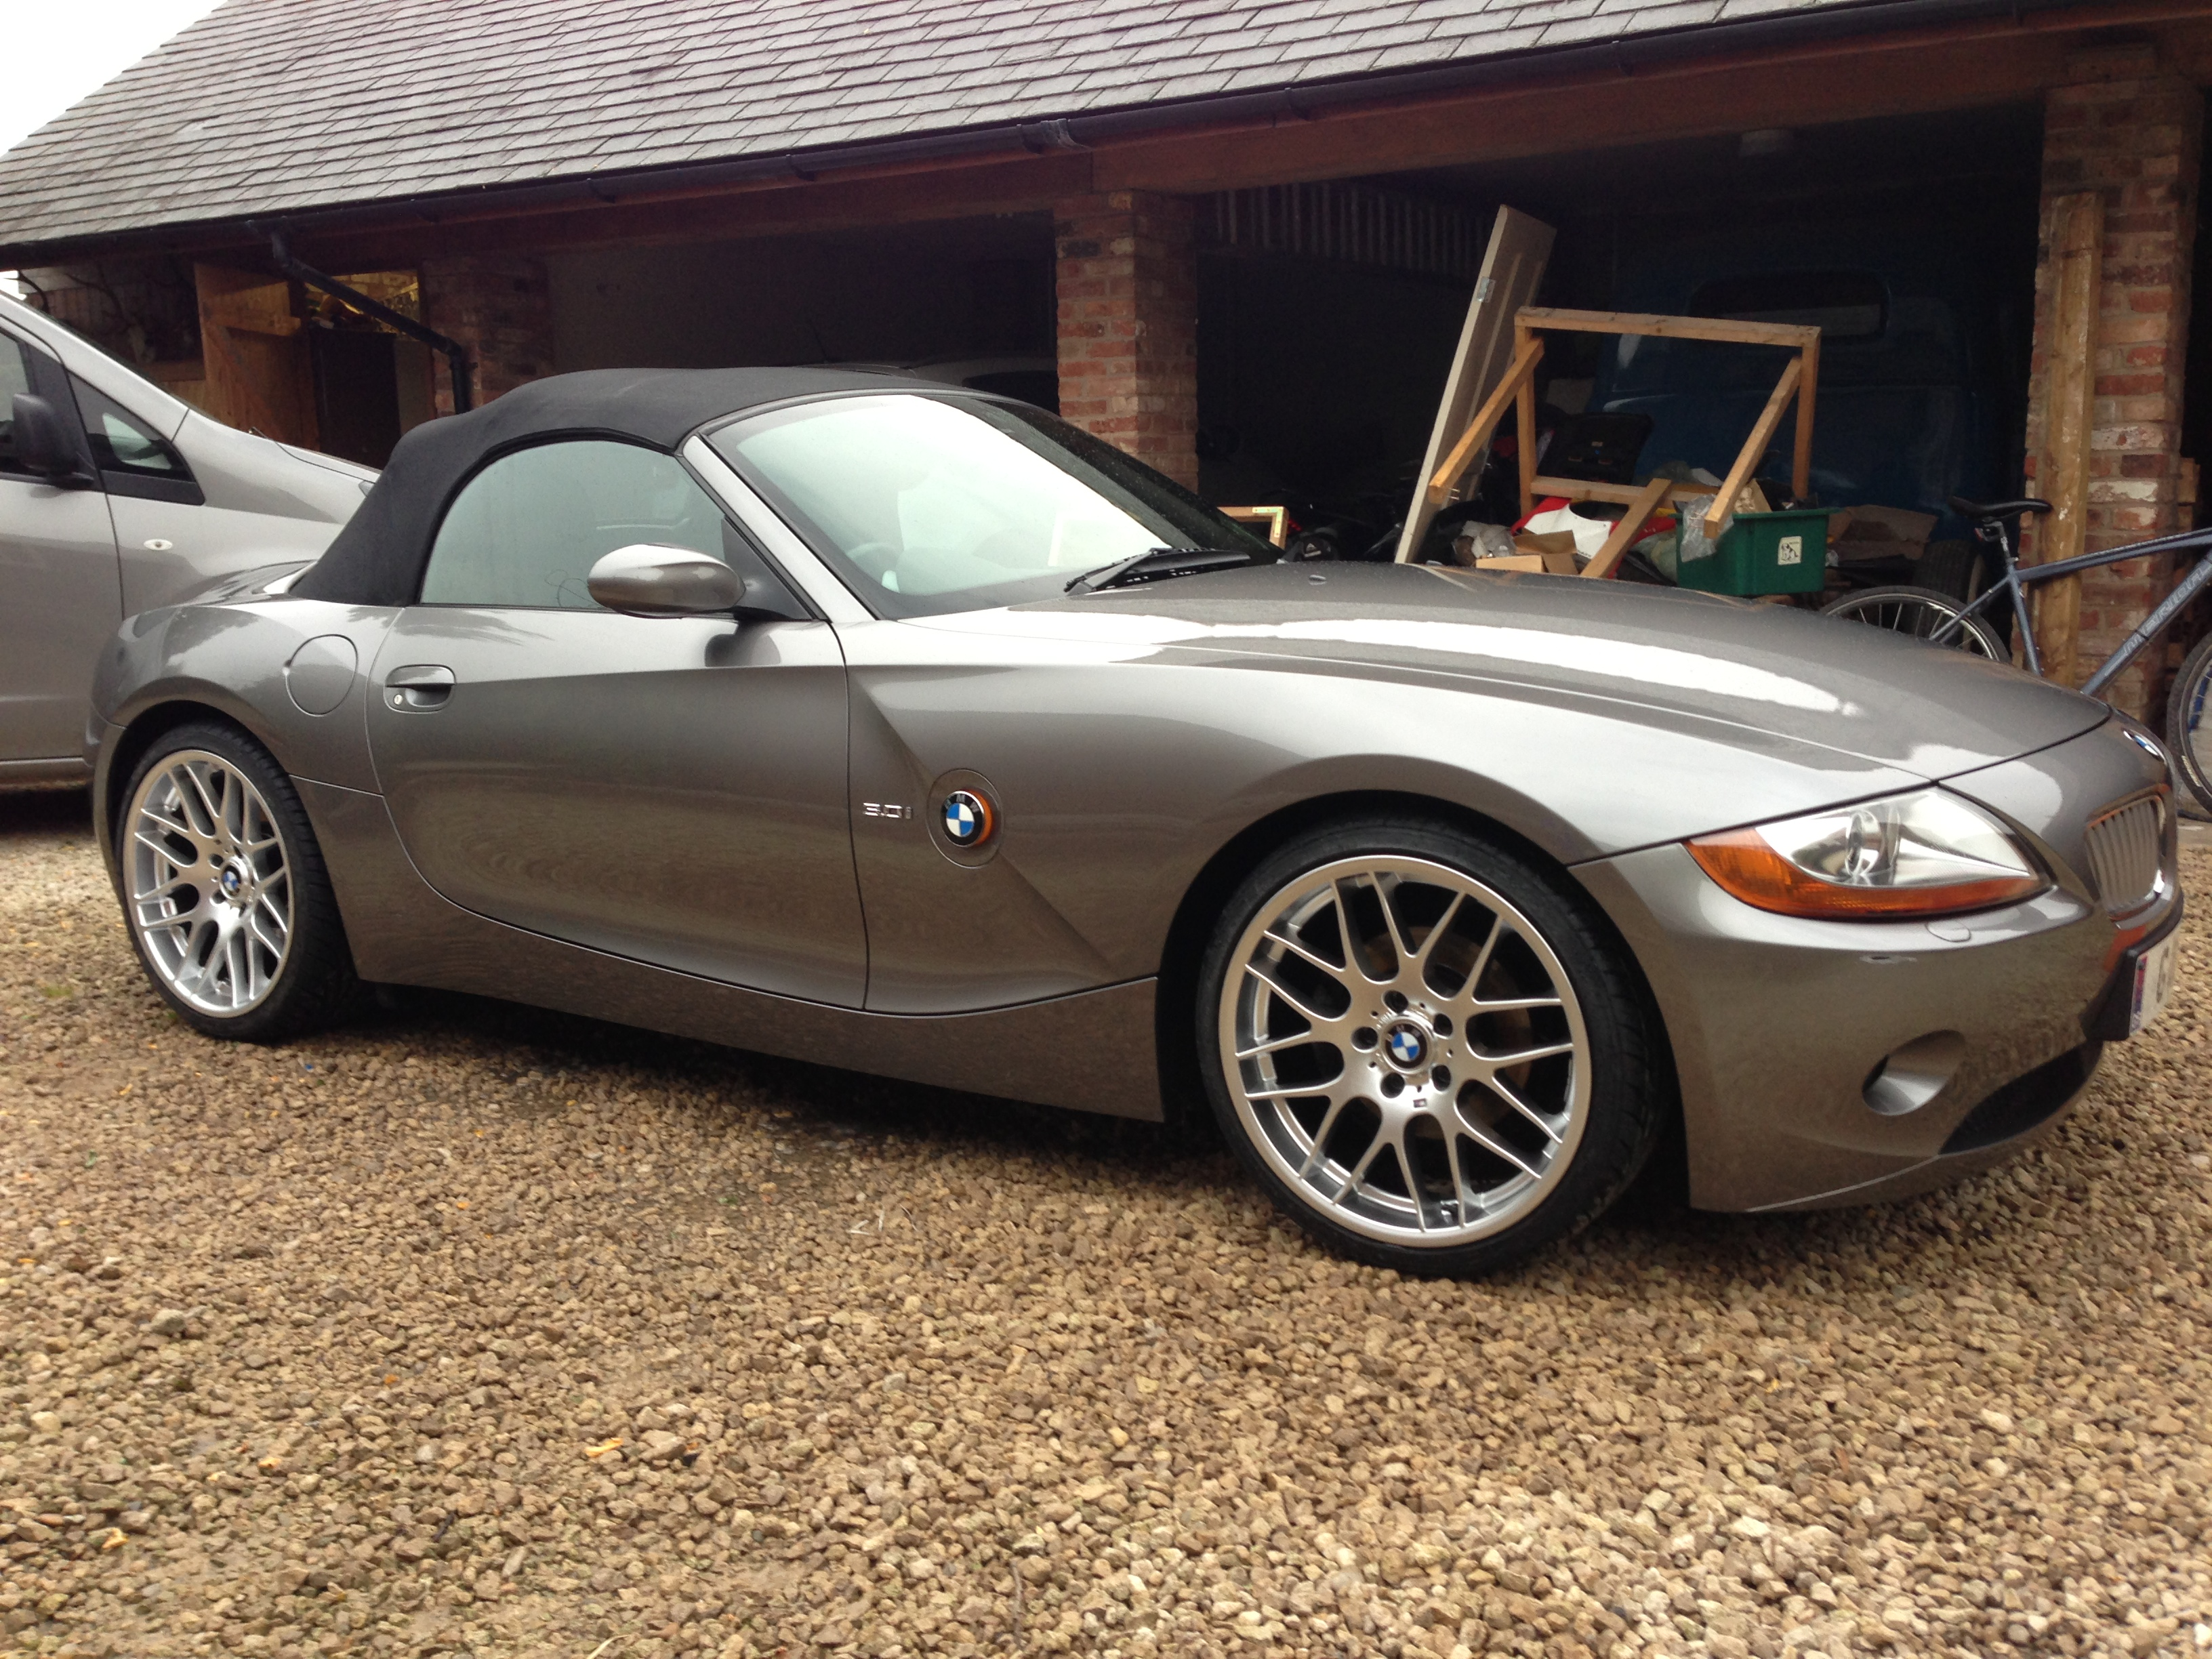 New 19 Quot Atomic Csl Alloys In Hyper Silver With Very Deep